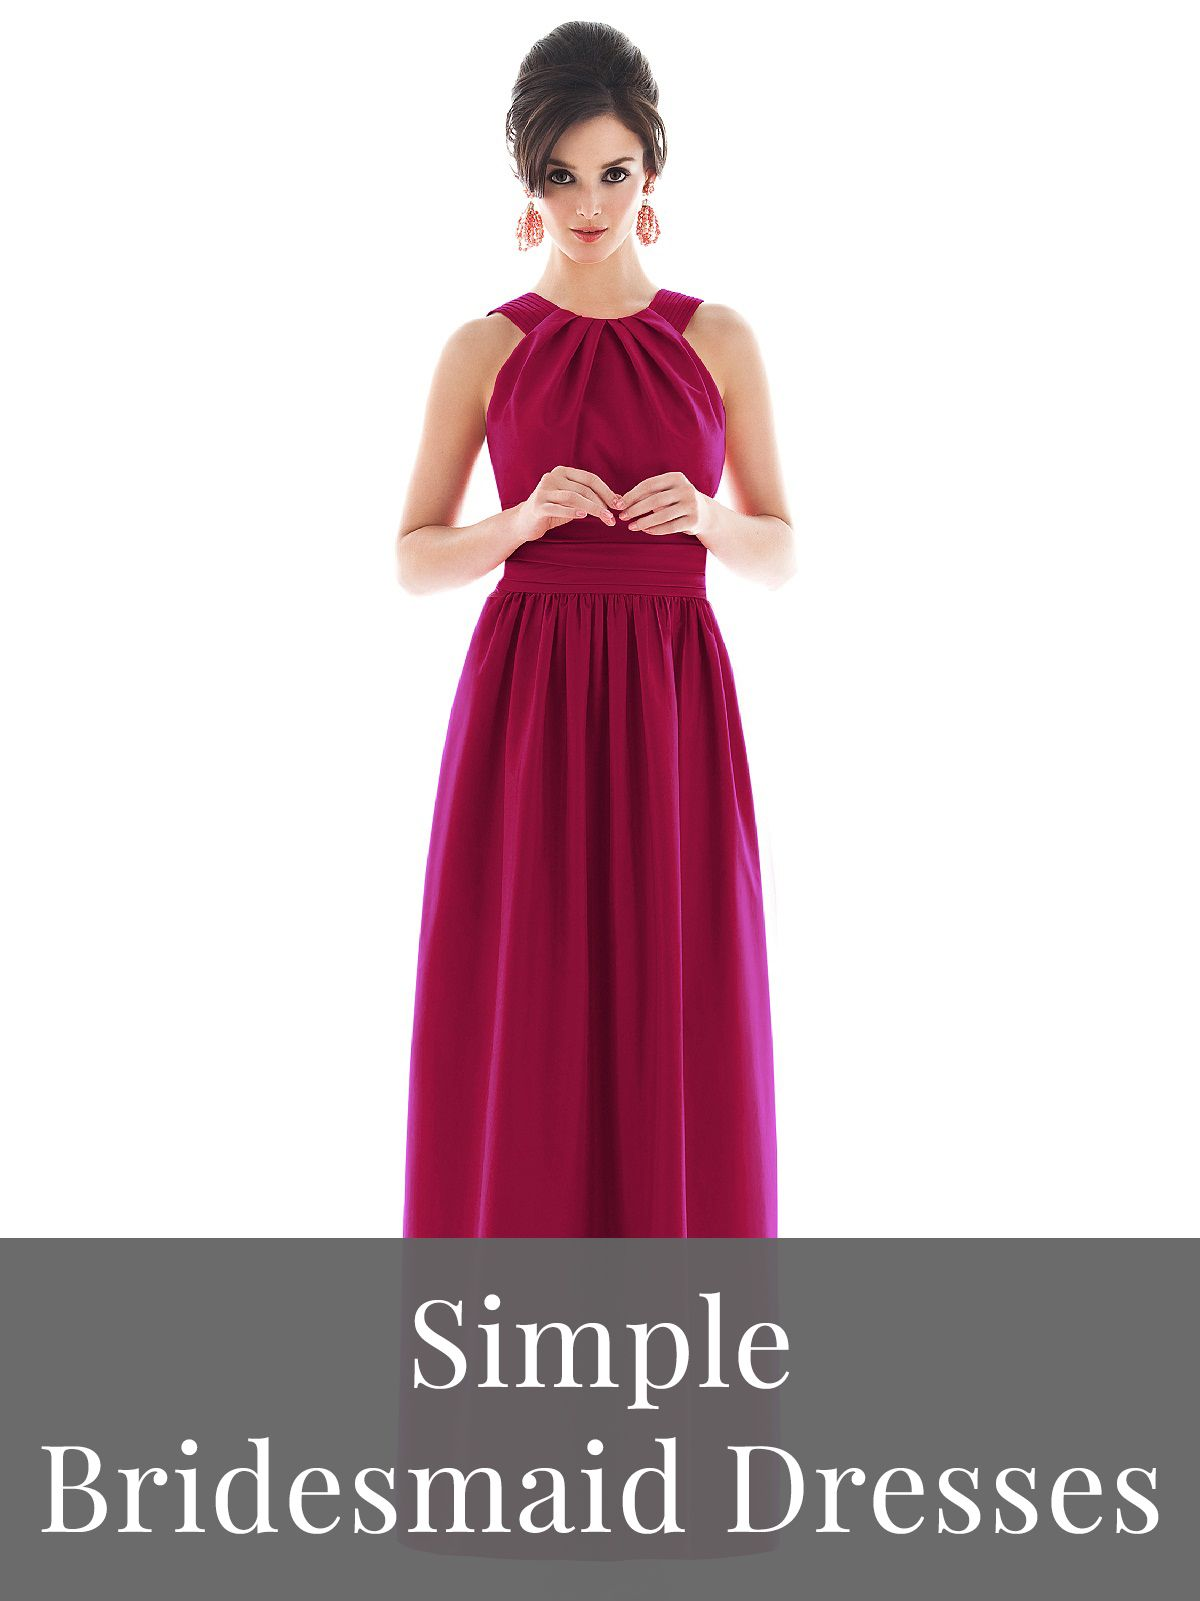 Simple bridesmaid dresses by alfredsung member board bride simple bridesmaid dresses by alfredsung ombrellifo Gallery